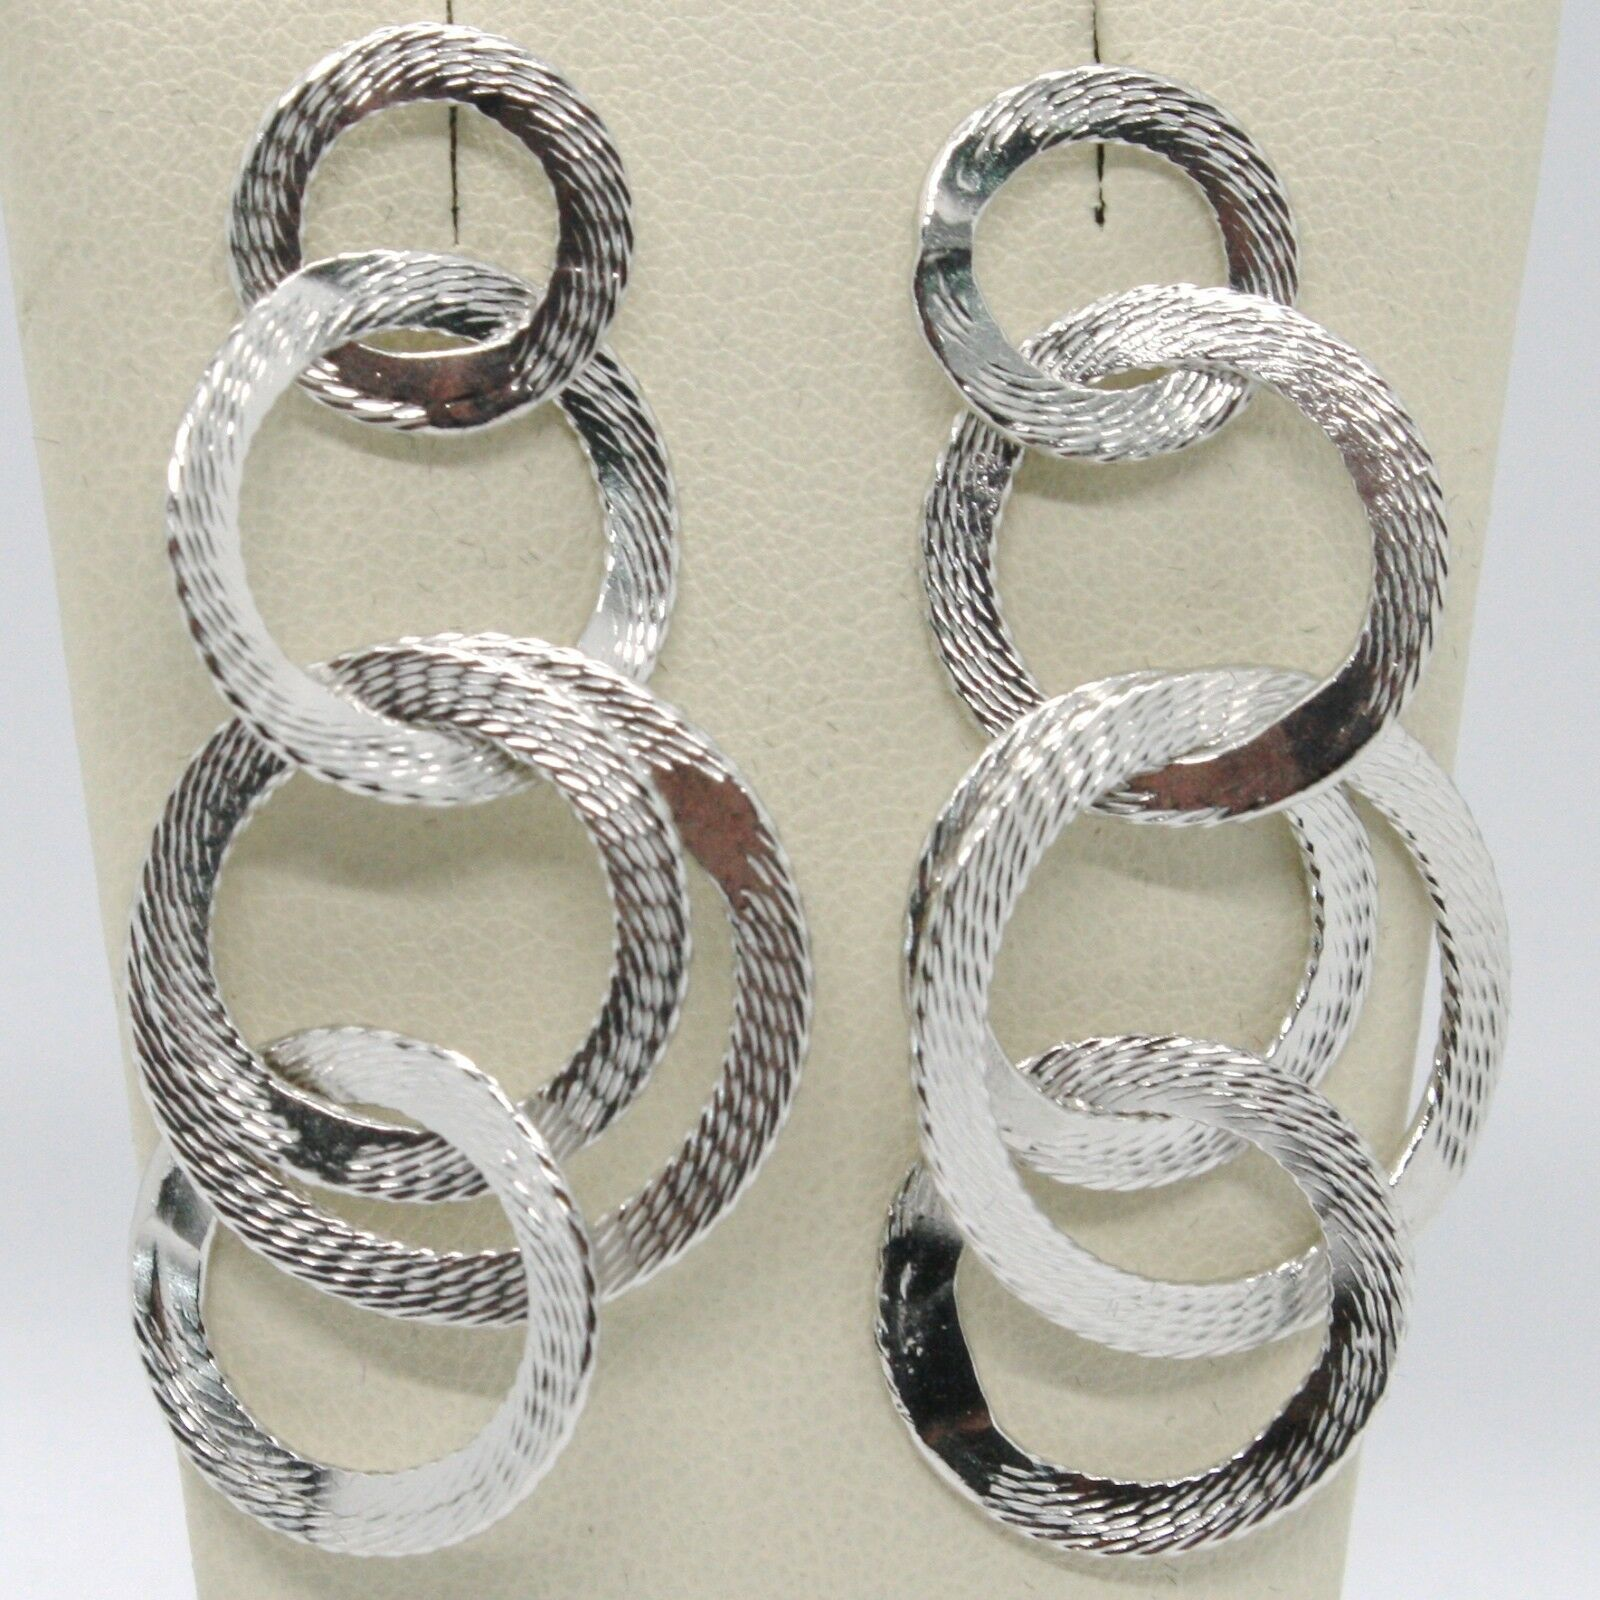 DROP EARRINGS 925 SILVER WITH CIRCLES WORKED BY MARY JANE IELPO, MADE IN ITALY